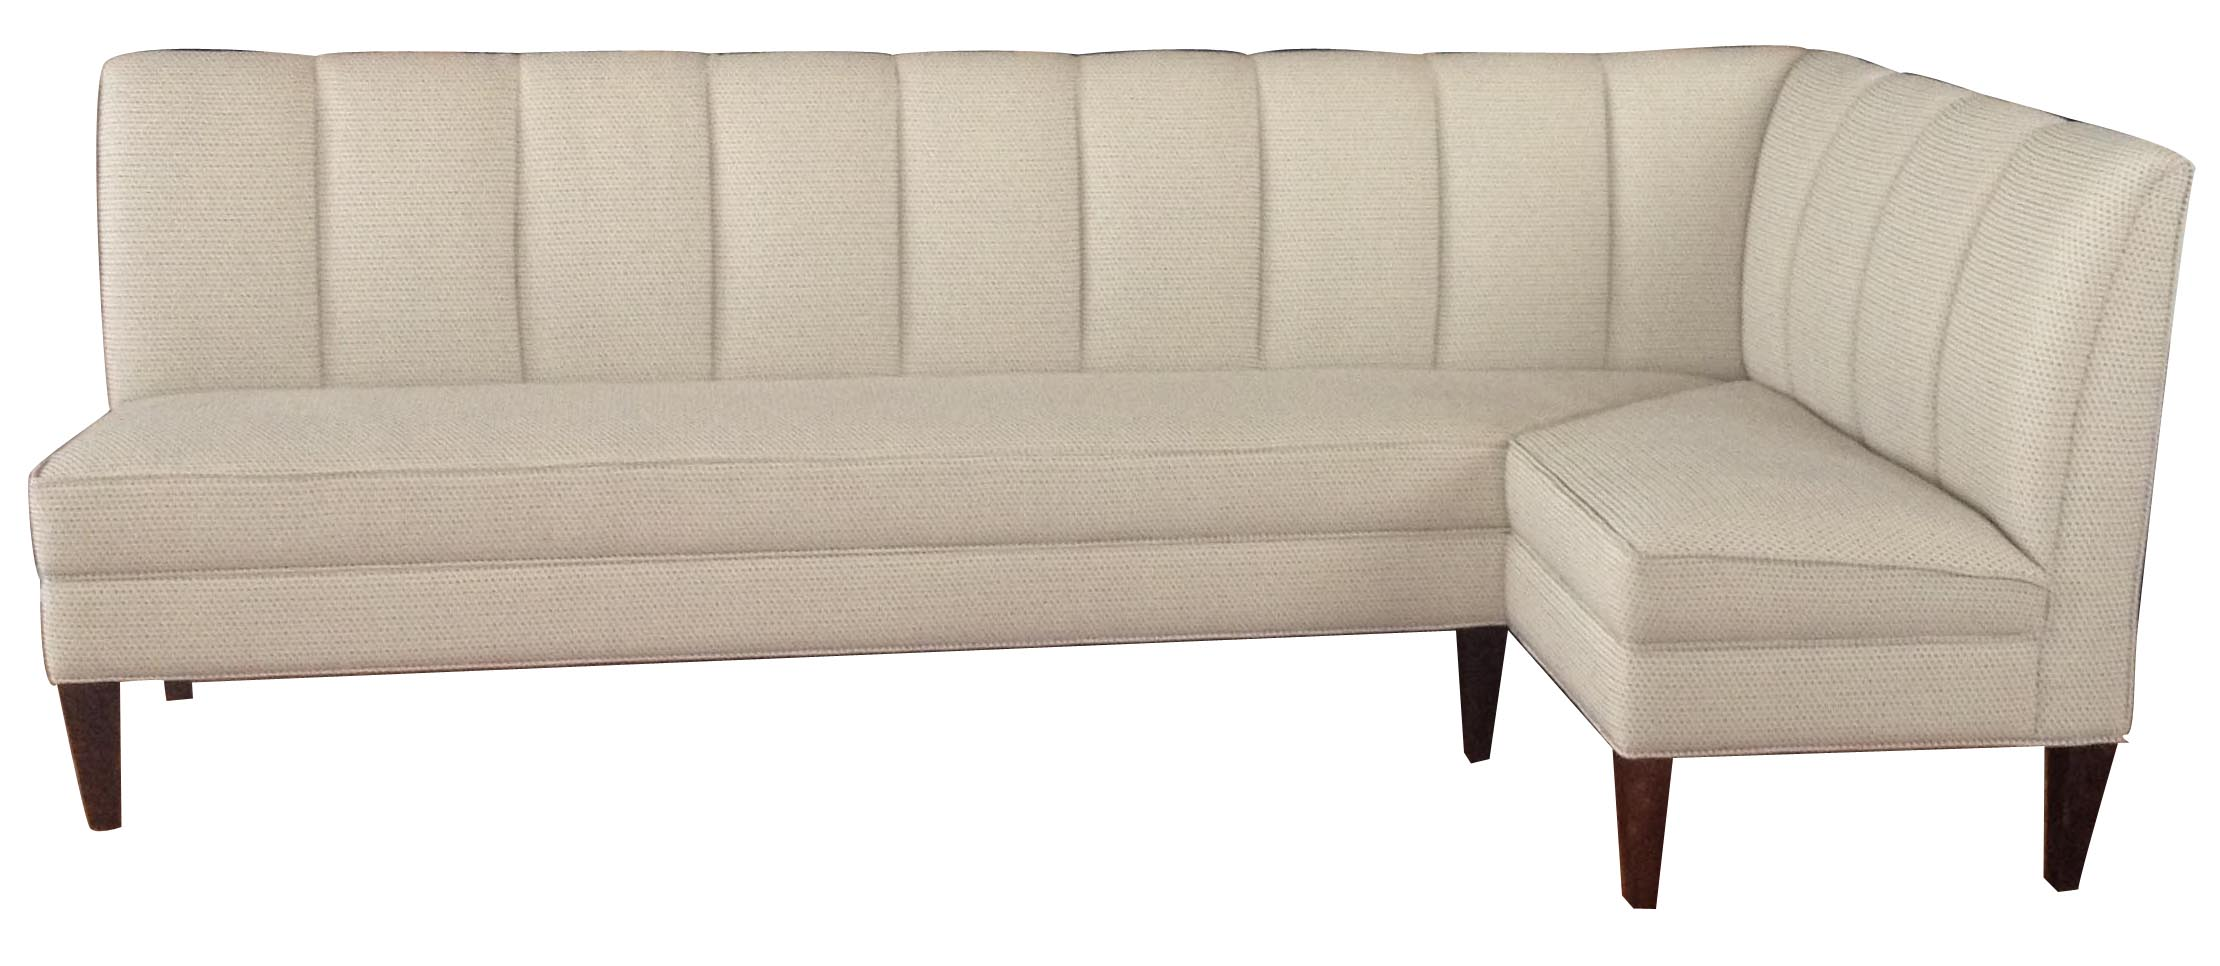 Chanel   Designer Banquette   Displayed   In:  Fabric:   Off White Robert Allen Fabric   Dimensions:   W: 96″ by 48″  D: 24″  H: 34″  Available in custom sizes & fabrics.  For the chicest of restaurants who pamper their customers with comfort and style.